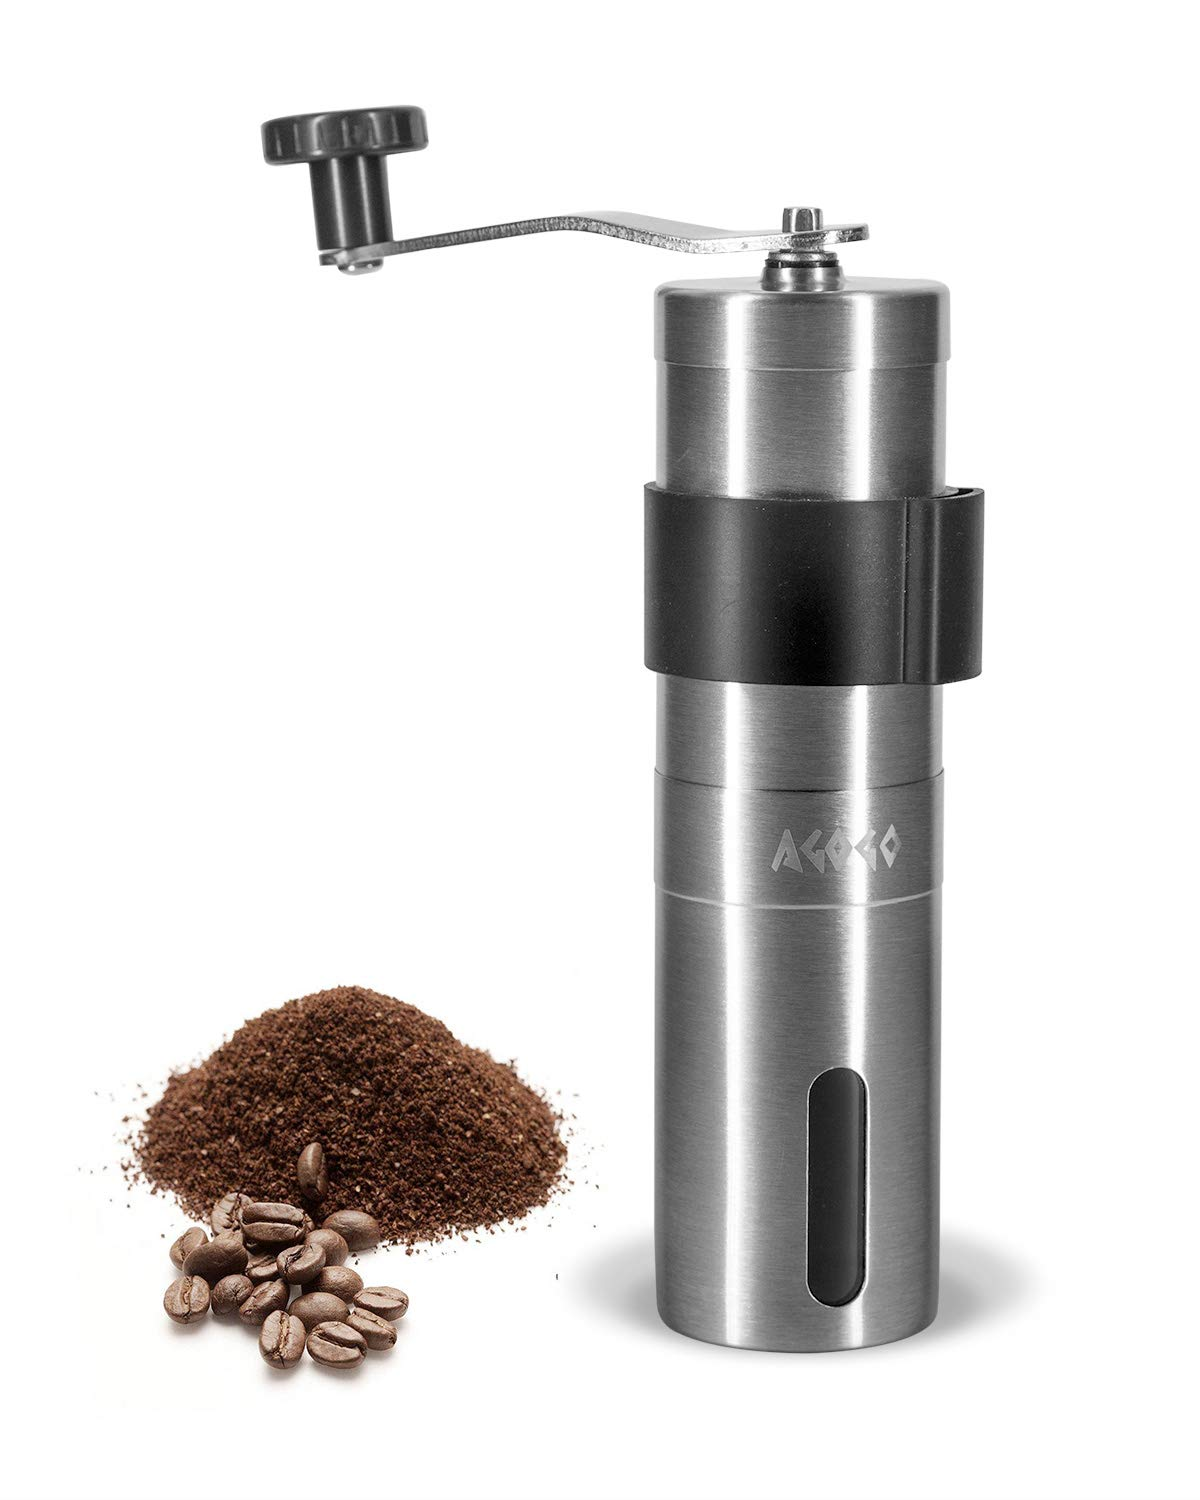 AGOGO Manual Coffee Grinder with Adjustable Setting 304 Stainless Steel Bottle